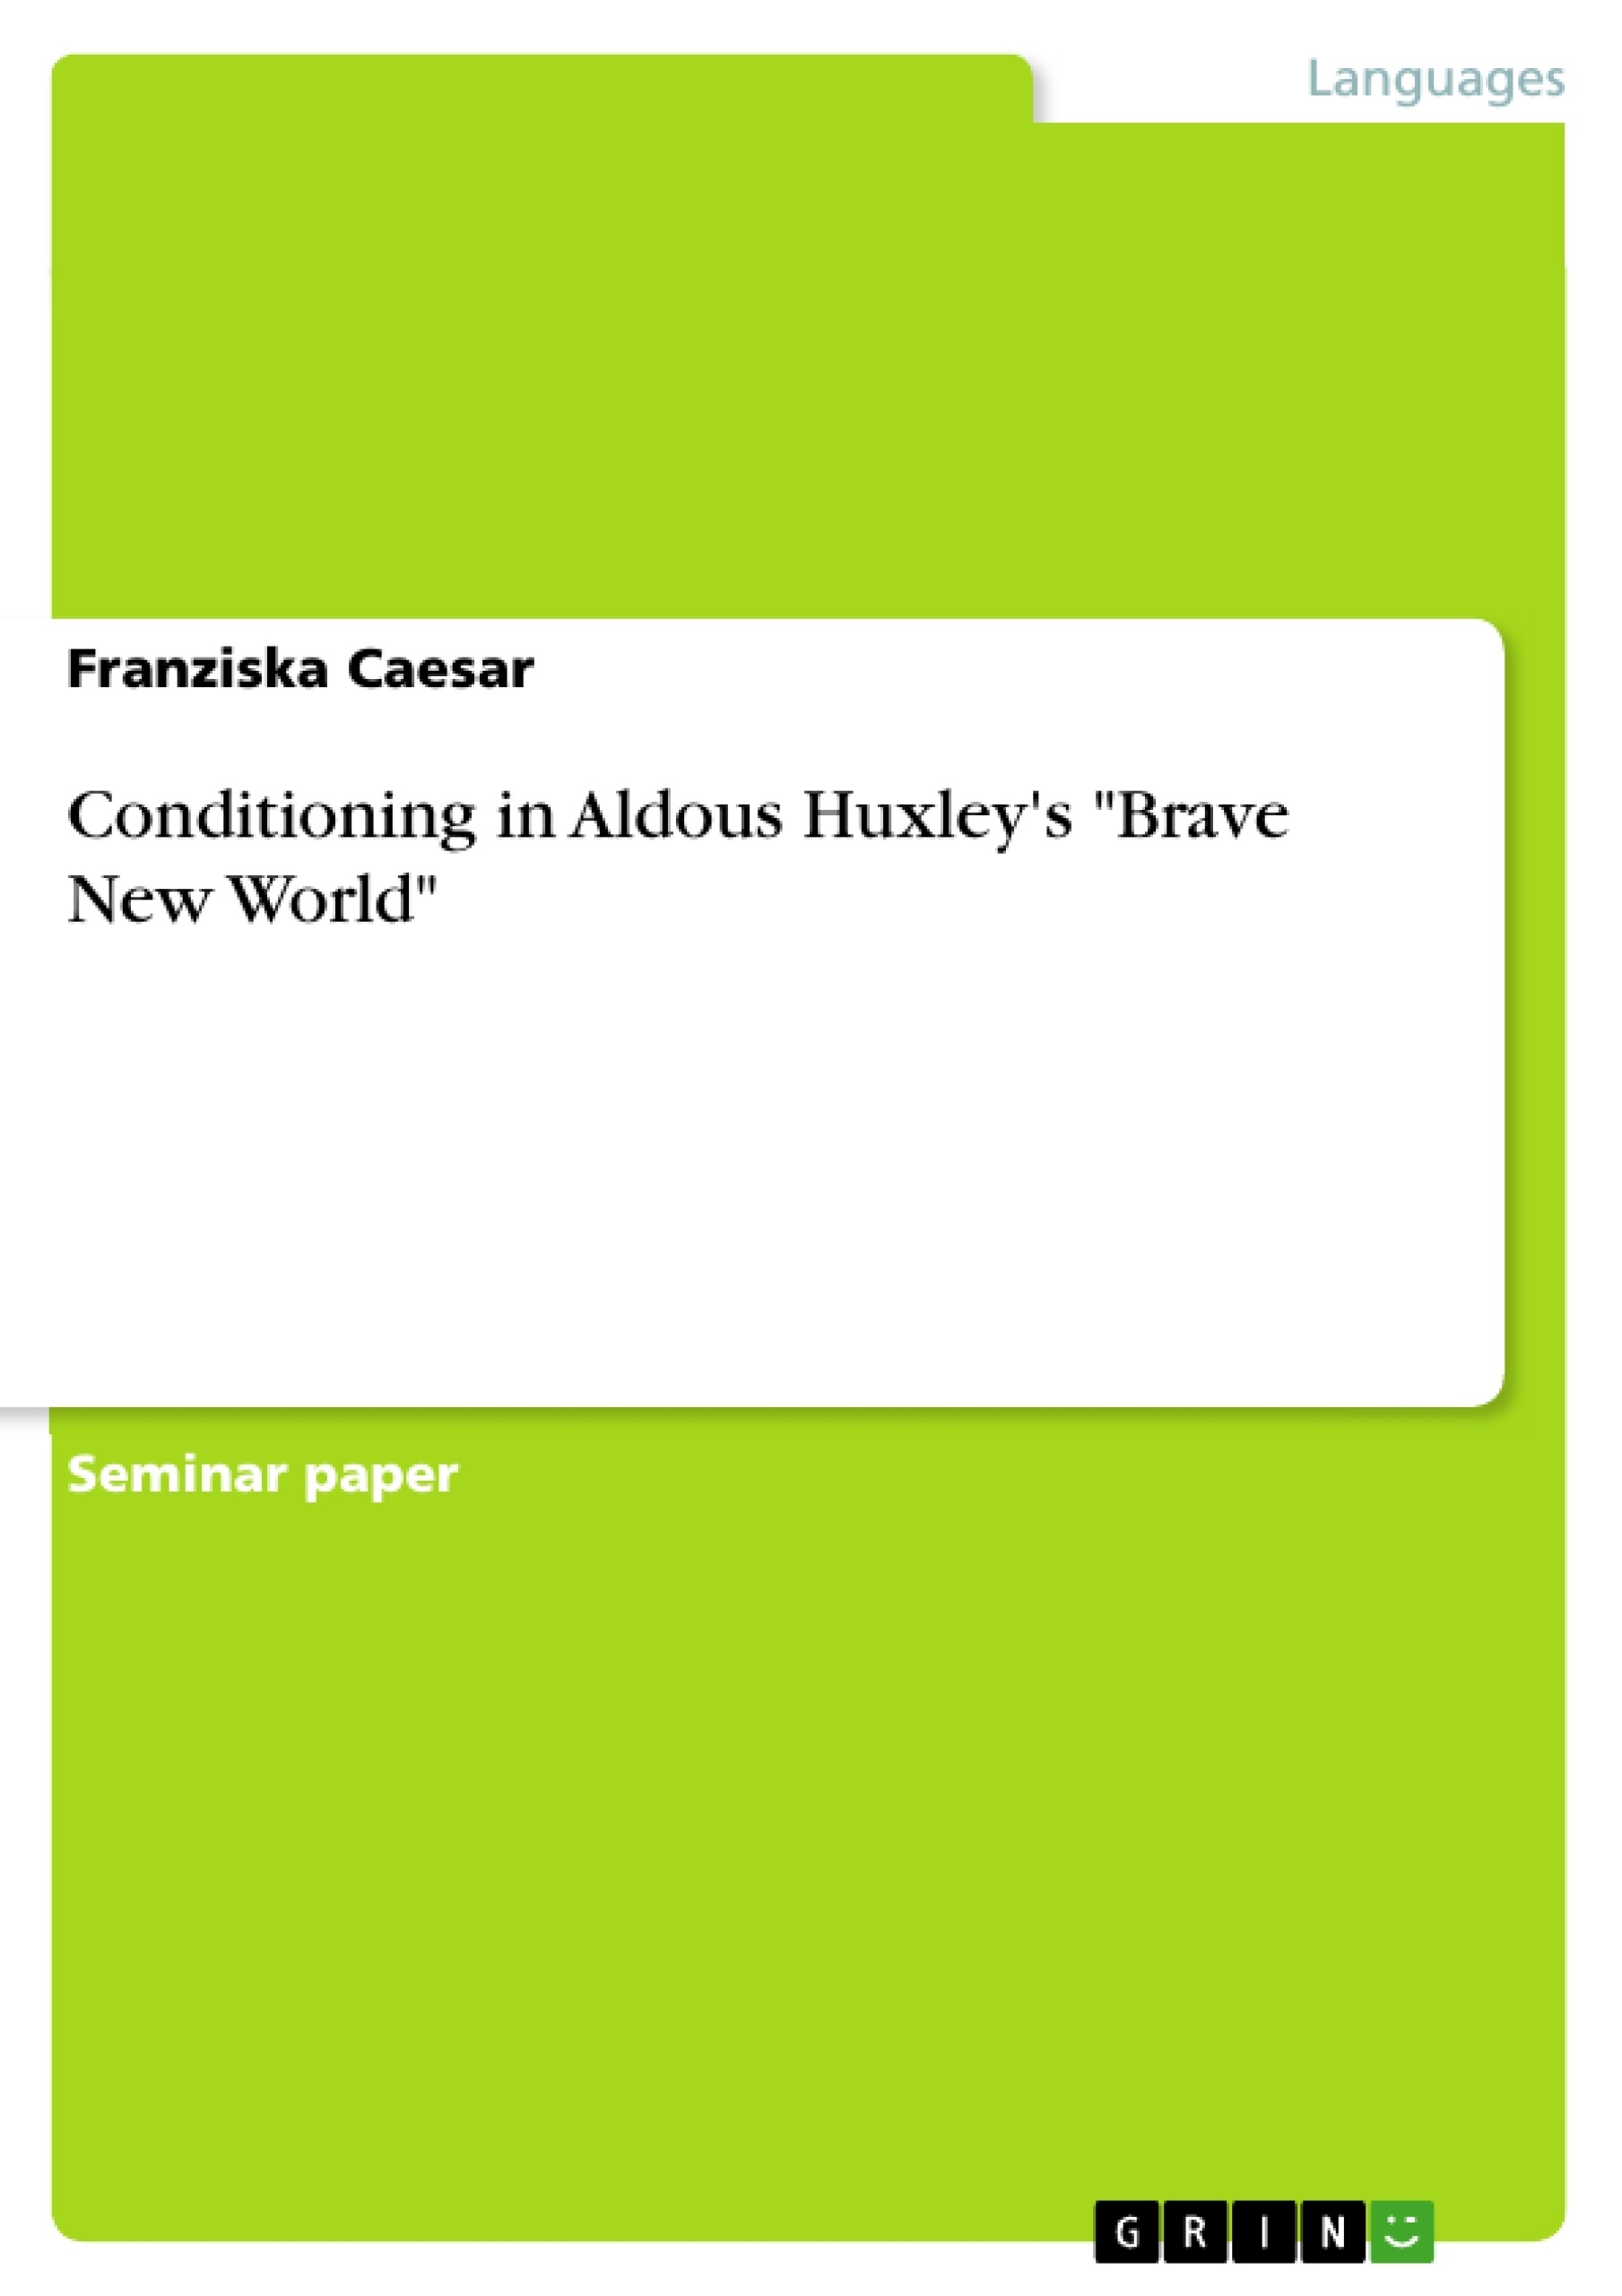 aldous huxley essay brave new world by aldous huxley dust jacket  conditioning in aldous huxley s brave new world publish your conditioning in aldous huxley s brave